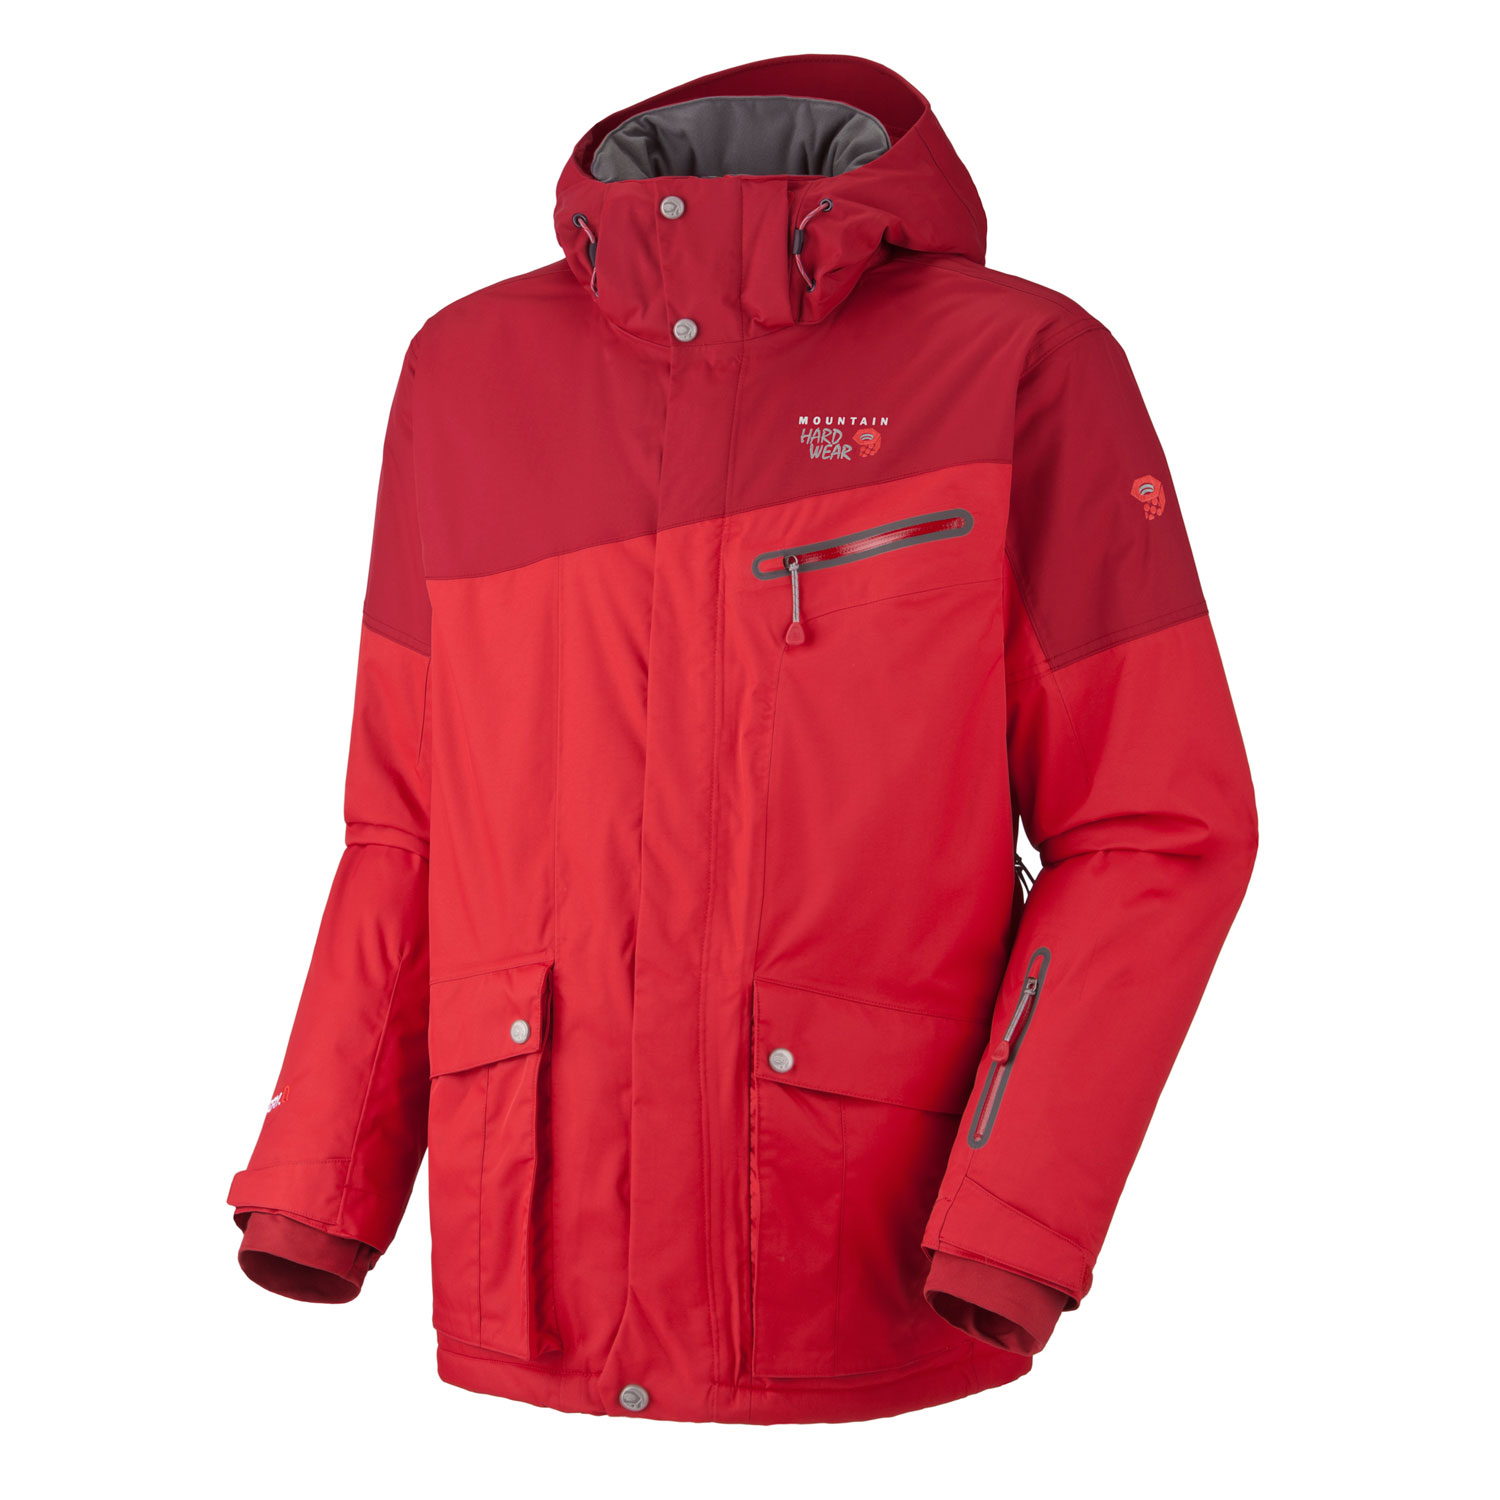 "Ski Break through the pack in the Mountain Hardwear Automator Ski Jacket! For a jacket that is heavy enough to hold up to the harshest conditions, the Mountain Hardwear Automator Ski Jacket is still light enough to easily get around in. Coming in at just over 2 pounds, the Downhill twill 2L shell keeps the water and chilly air out, and the DryQ Elite insulation means you can stay nice and warm without breaking out in a sweat. The Automator Ski Jacket also features an adjustable hood, adjustable cuffs, and even a stretch powder skirt for custom fit and protection.  Avg. weight: 2 lb 10 oz; 1.18kg    Center back length: 33""    Fabric: body: Downhill Twill 2L (100% nylon  insulation: Thermic Micro    DryQ Elite: 100% waterproof, most breathable, air-permeable, no-wait comfort    Removable zip-off hood    Removable, adjustable, stretch powder skirt    Pit zips for additional ventilation    Soft, ""Butter jersey"" cuffs    Plenty of interior pockets for all your gear    One-handed hood and hem drawcords for quick adjustments    Zip hand-warmer pockets    Micro-Chamois - lined chin guard eliminates zipper chafe - $164.95"